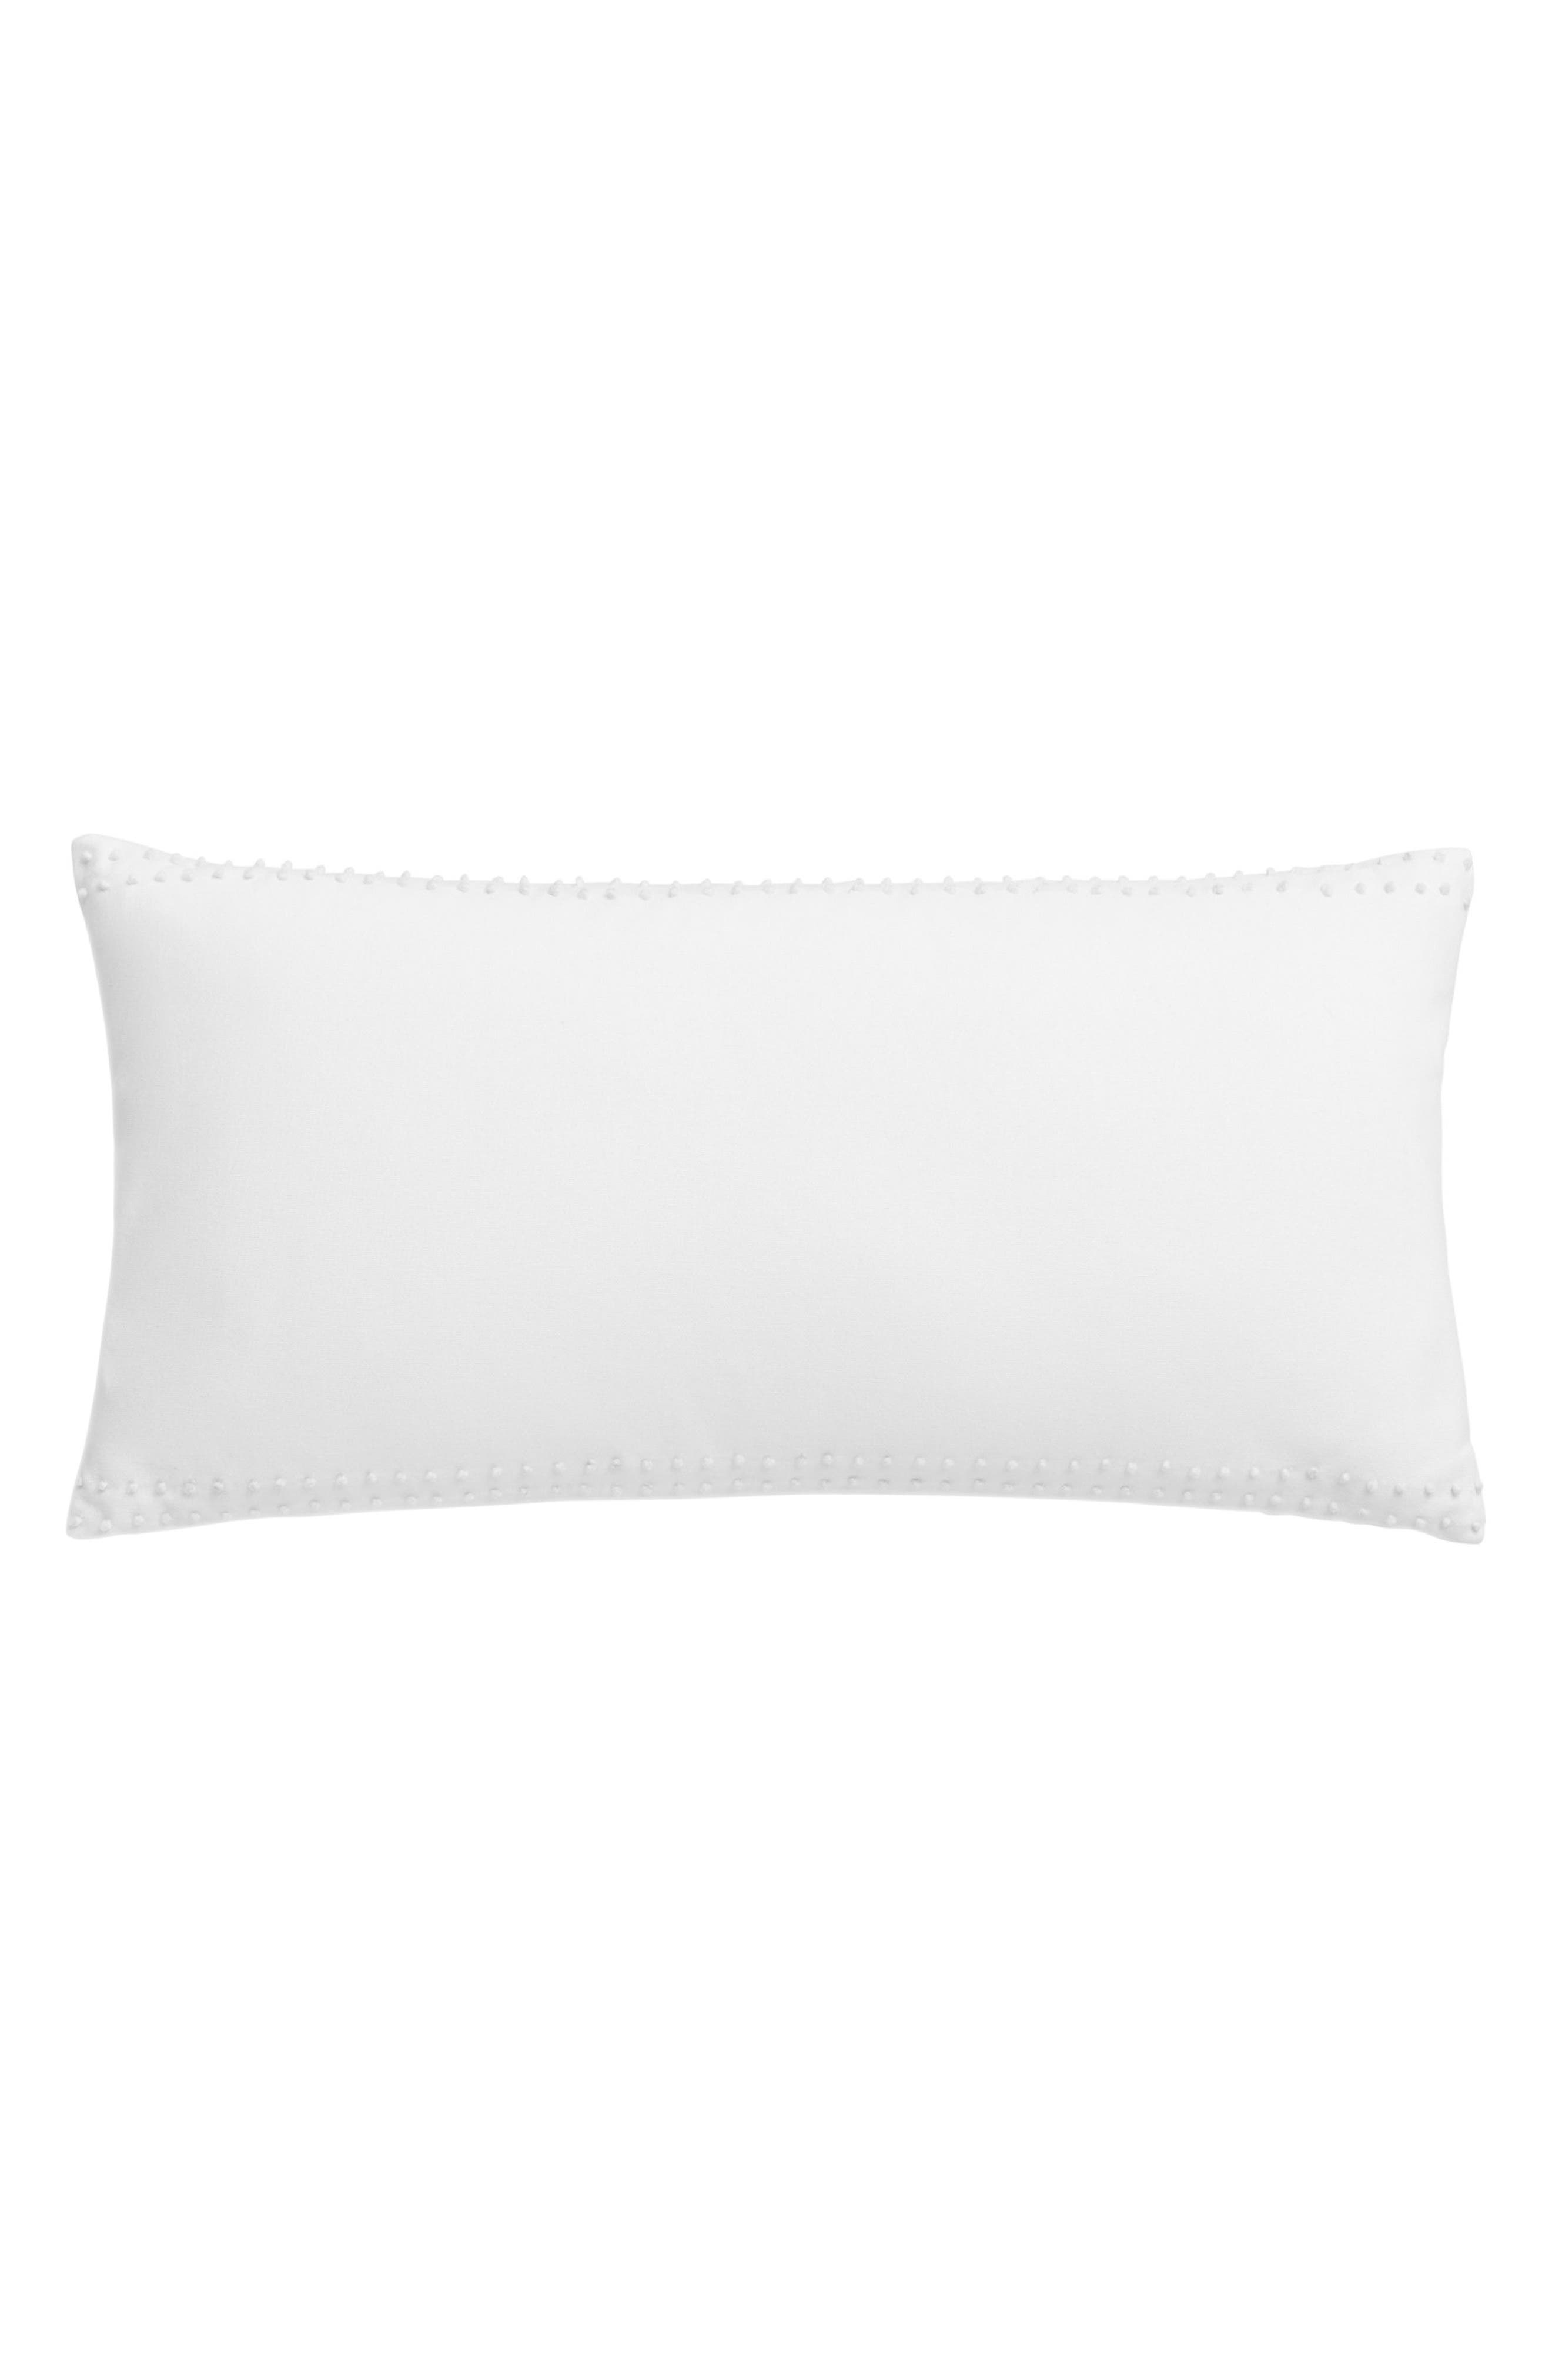 Blackpoint Hex Pillow,                         Main,                         color, White